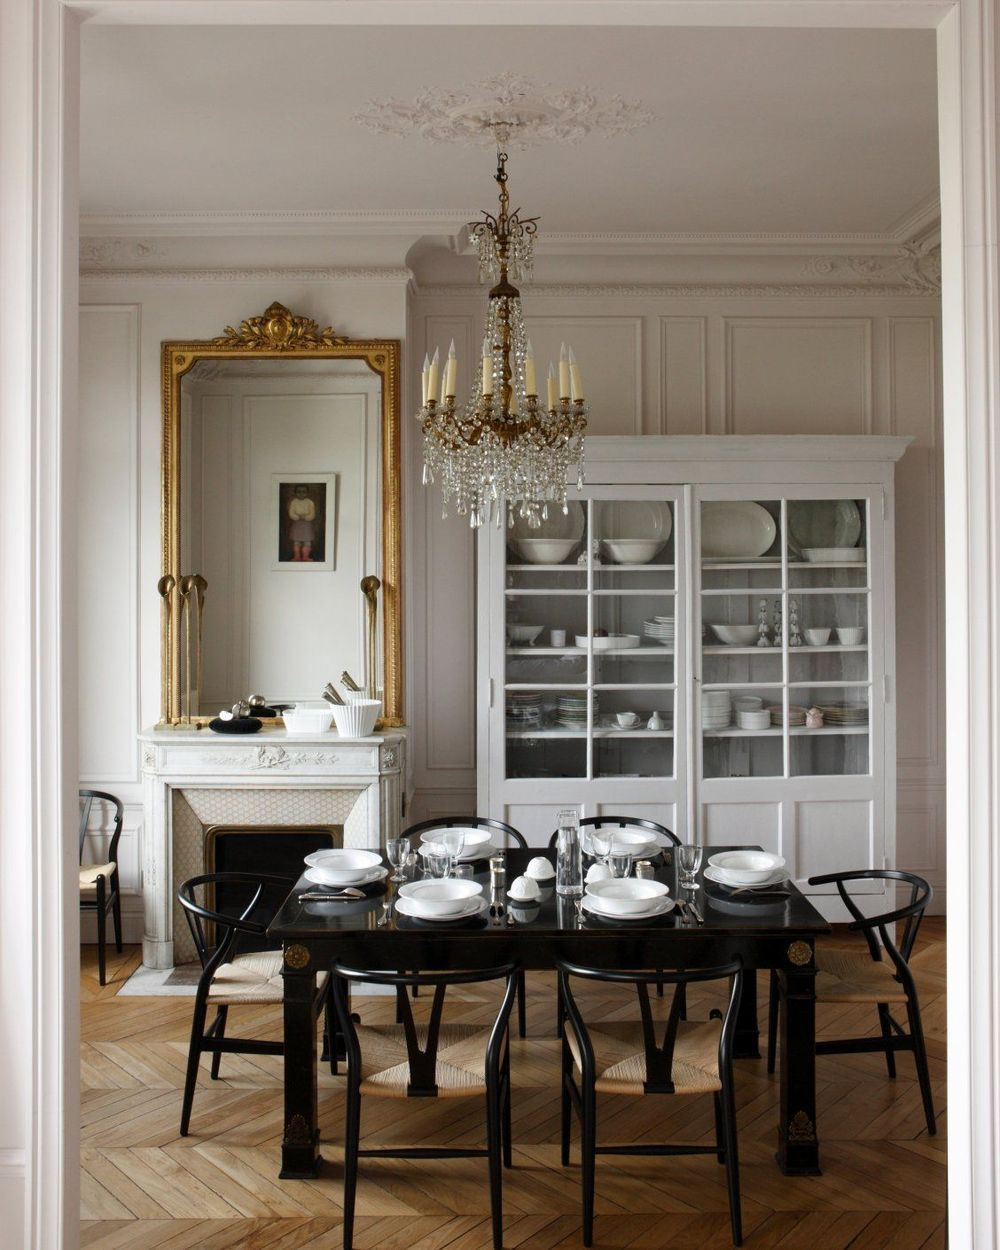 Parisian Dining Room design with Black dining table, Black wishbone chairs and crystal chandelier via Jean-Marc Palisse and CoteMaison